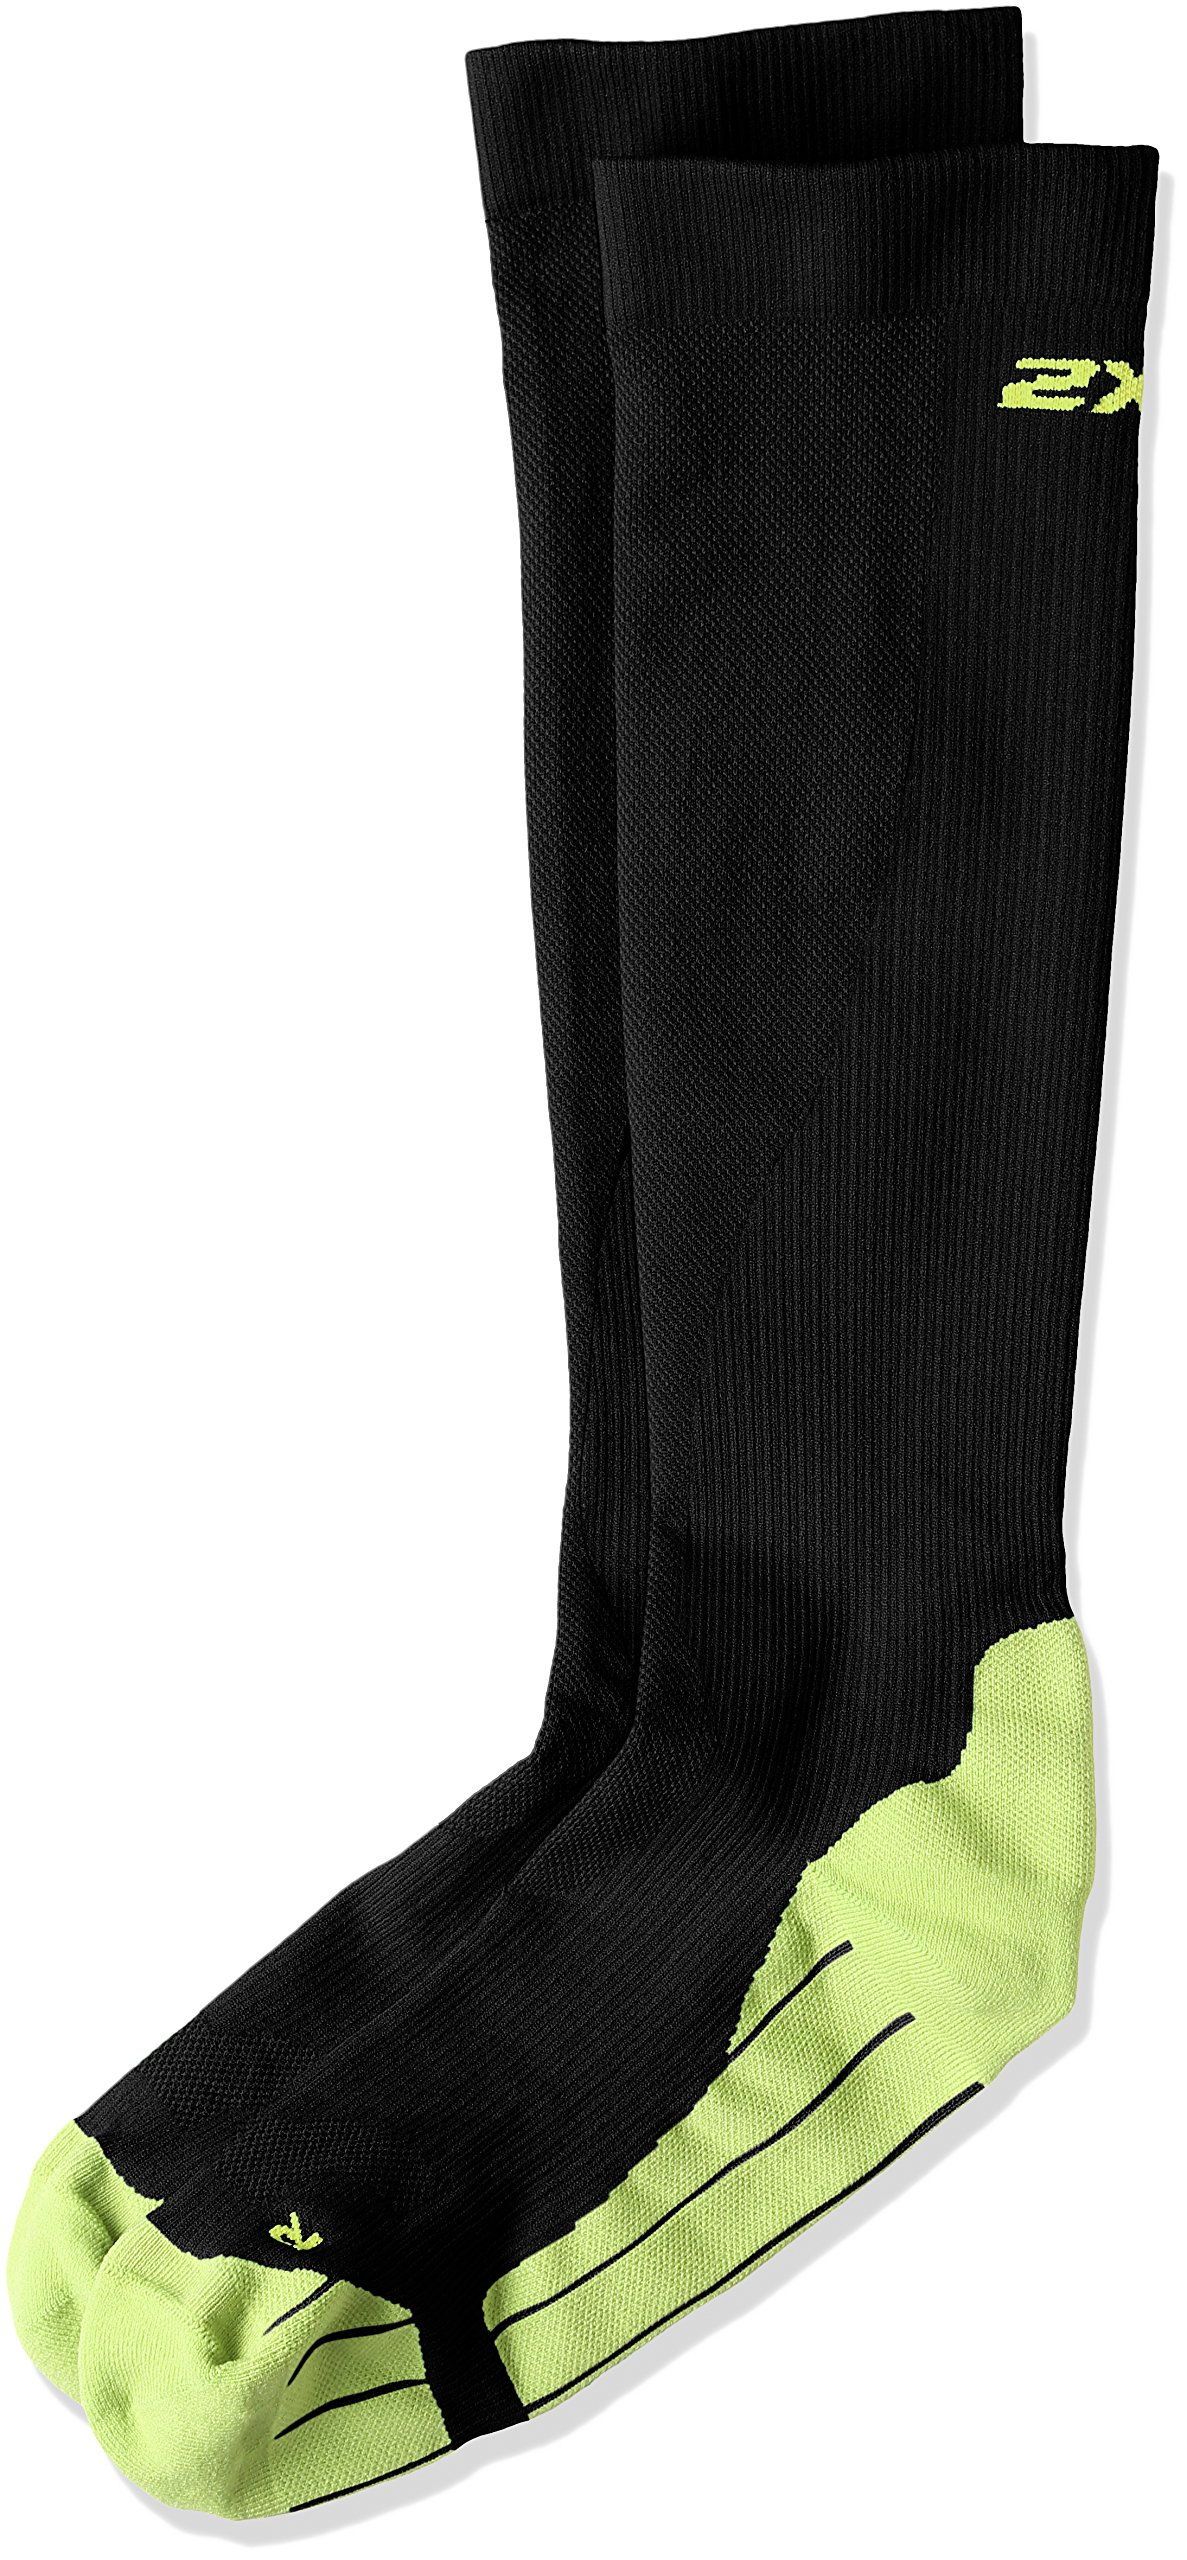 2XU Men's Compression Performance Run Socks, Black/Fluro Green, X-Small by 2XU (Image #2)